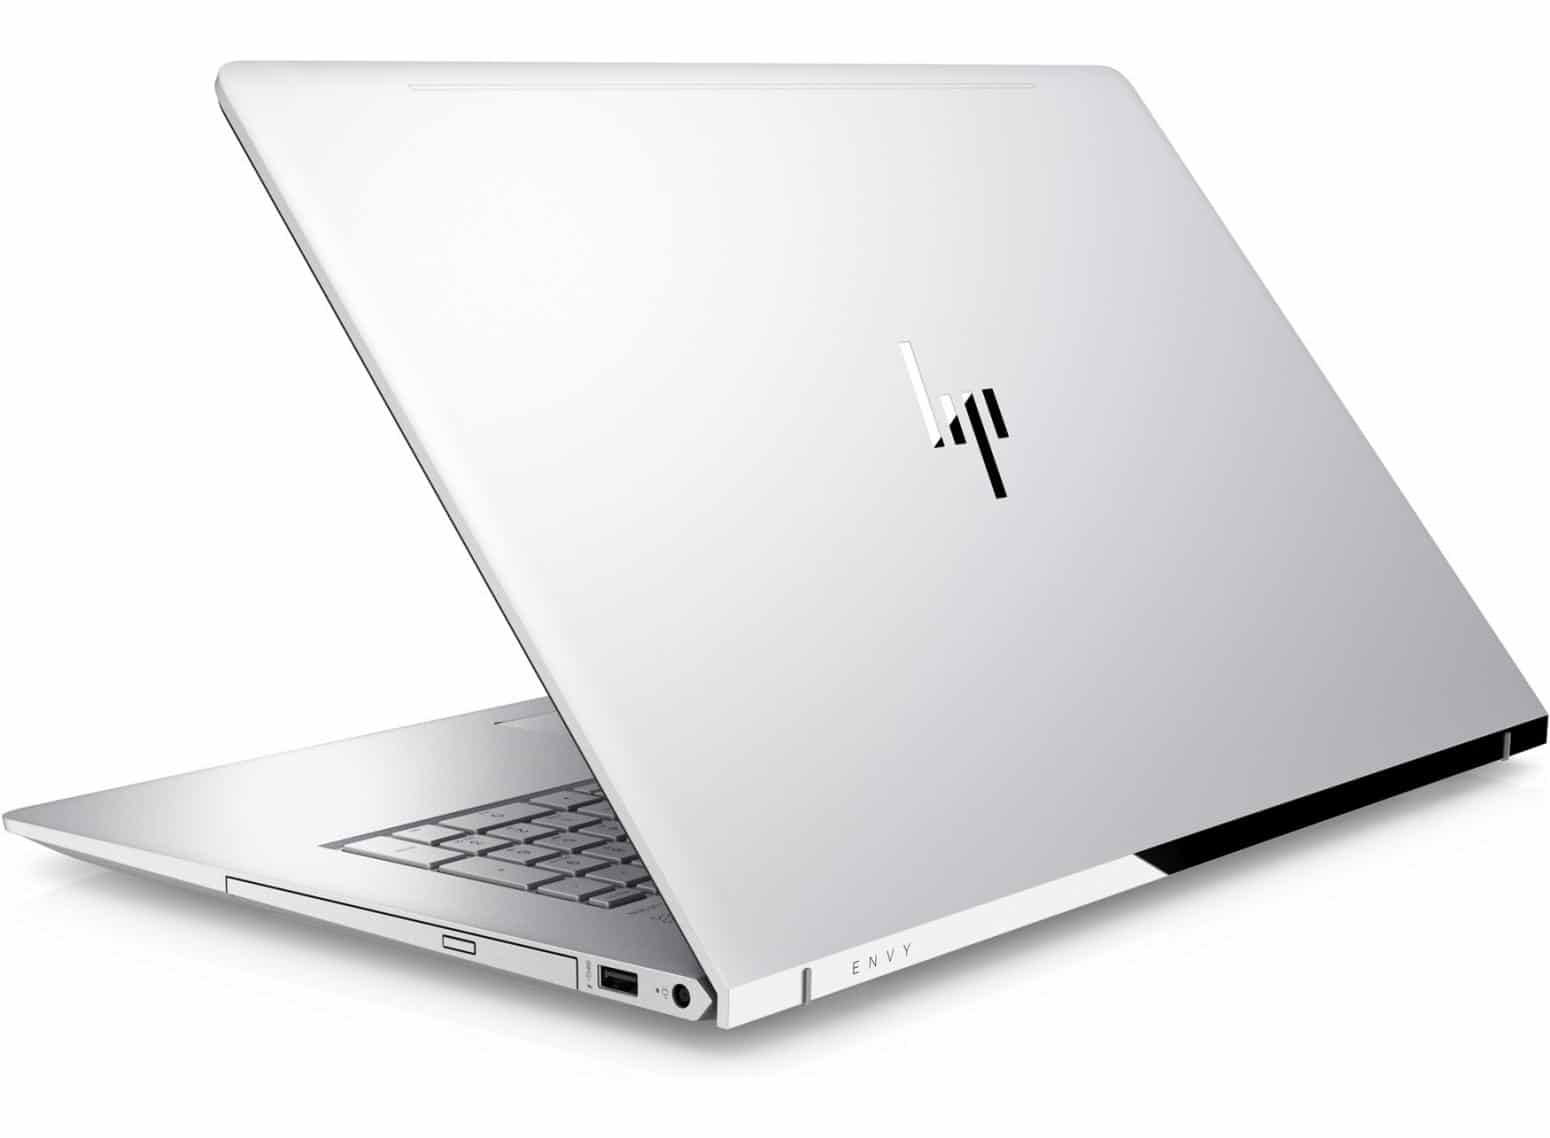 "HP Envy 17-ae112nf, PC portable 17"" fin IPS SSD512 i7 Refresh MX150 à 1520€"